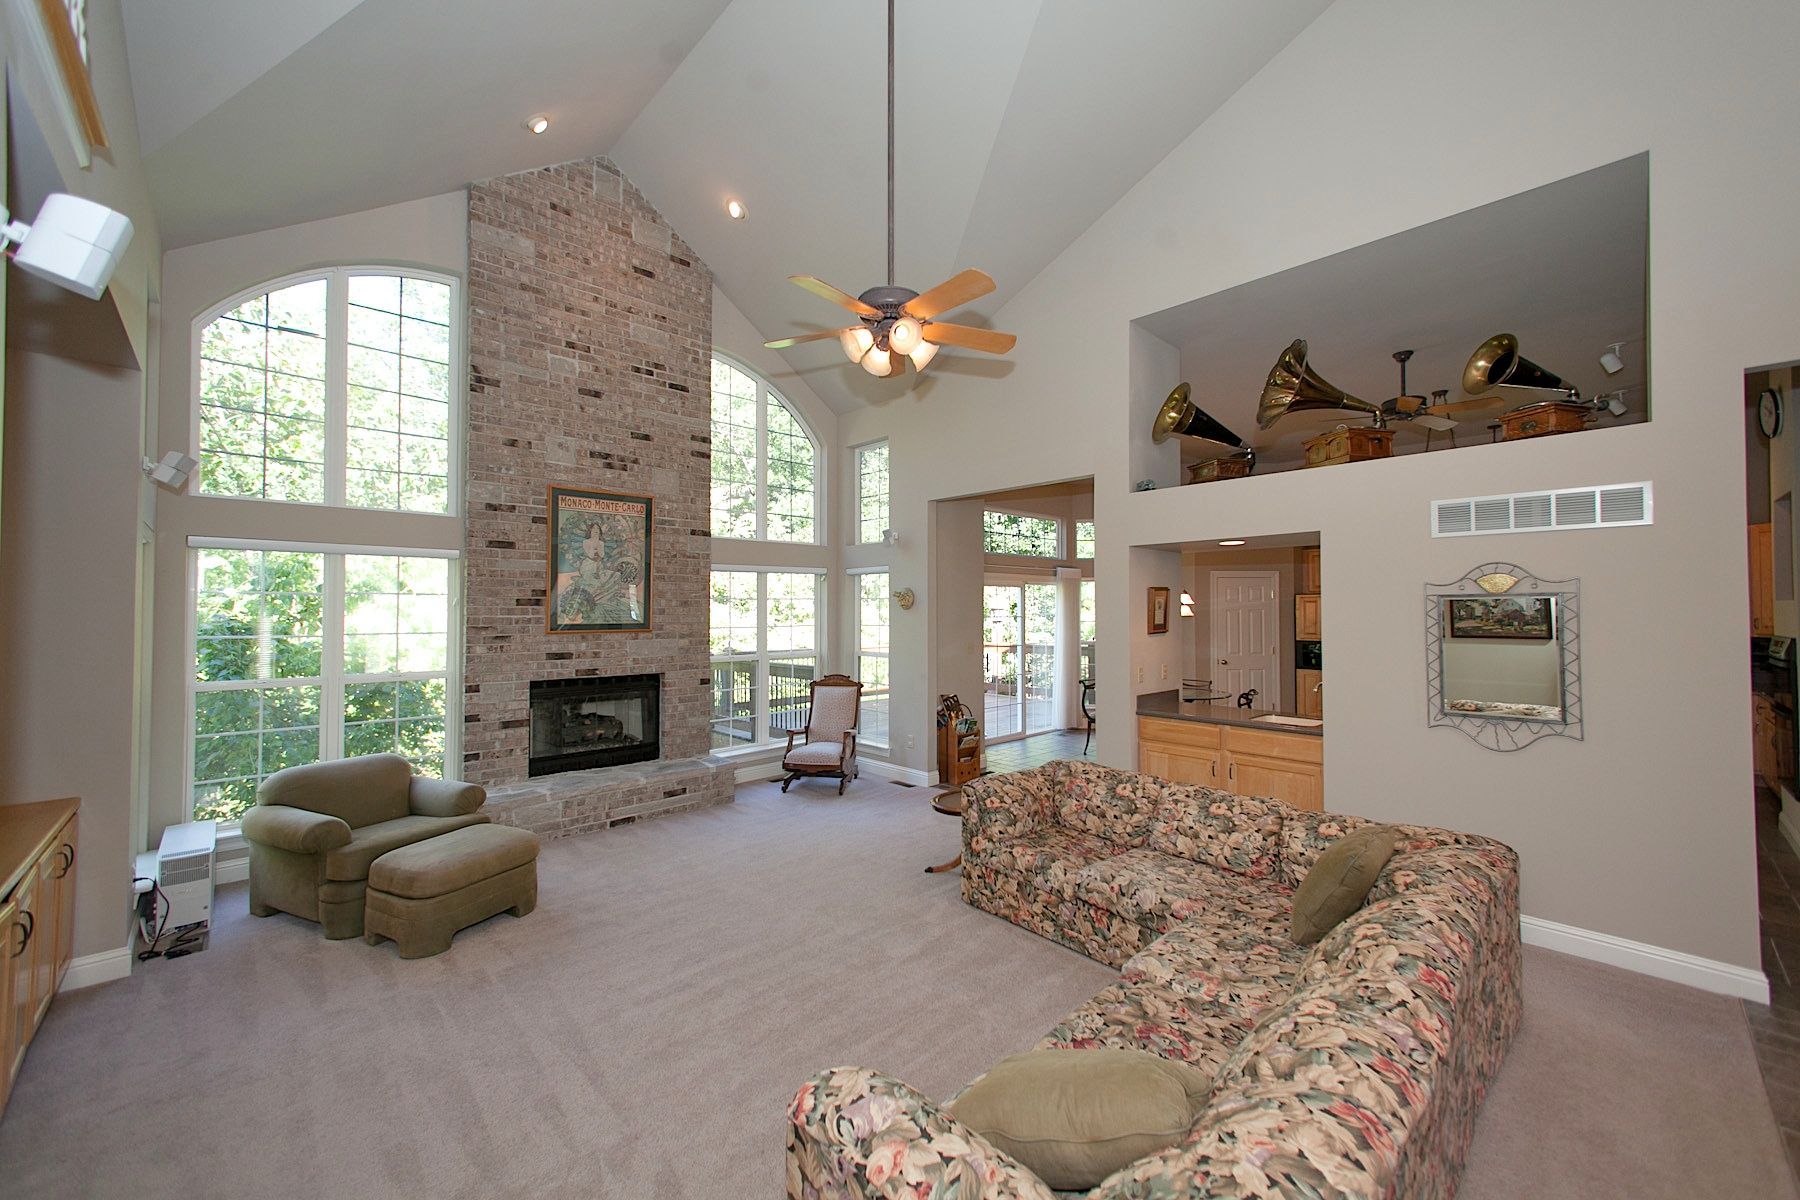 2 Story Great Room With Floor To Ceiling Brick Fireplace And Wet